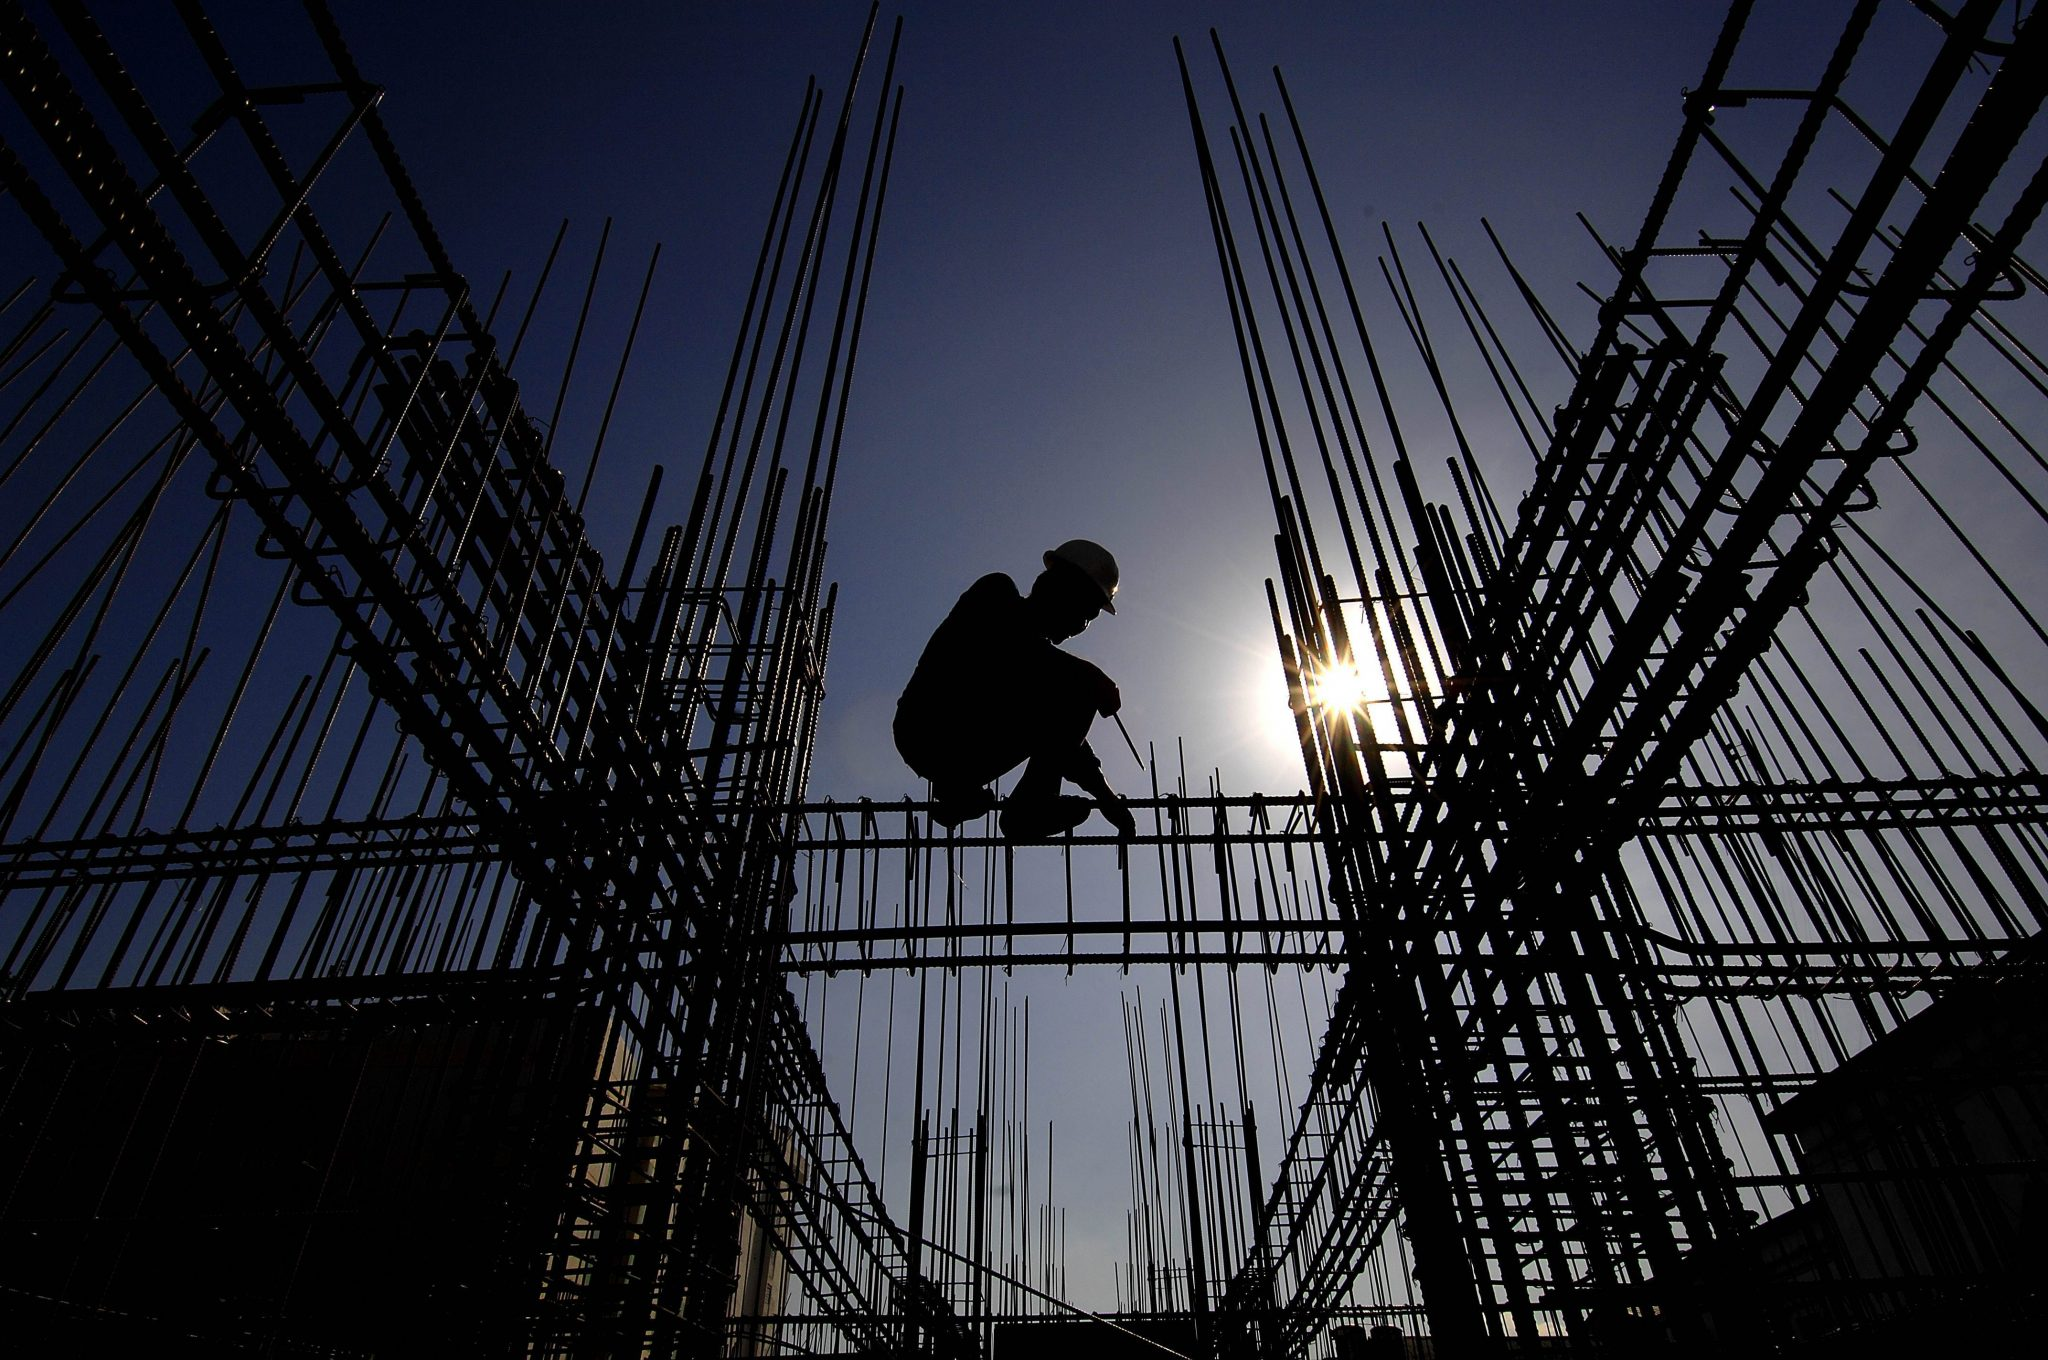 A construction worker prepares steel reinforcment bars of an unfinished building in Manila on April 16, 2010.  The Philippines will avoid recession and post growth of at least 0.8 percent this year, despite the effects of the global economic slump and a series of killer storms, the government said recently. (Photo: AAP)